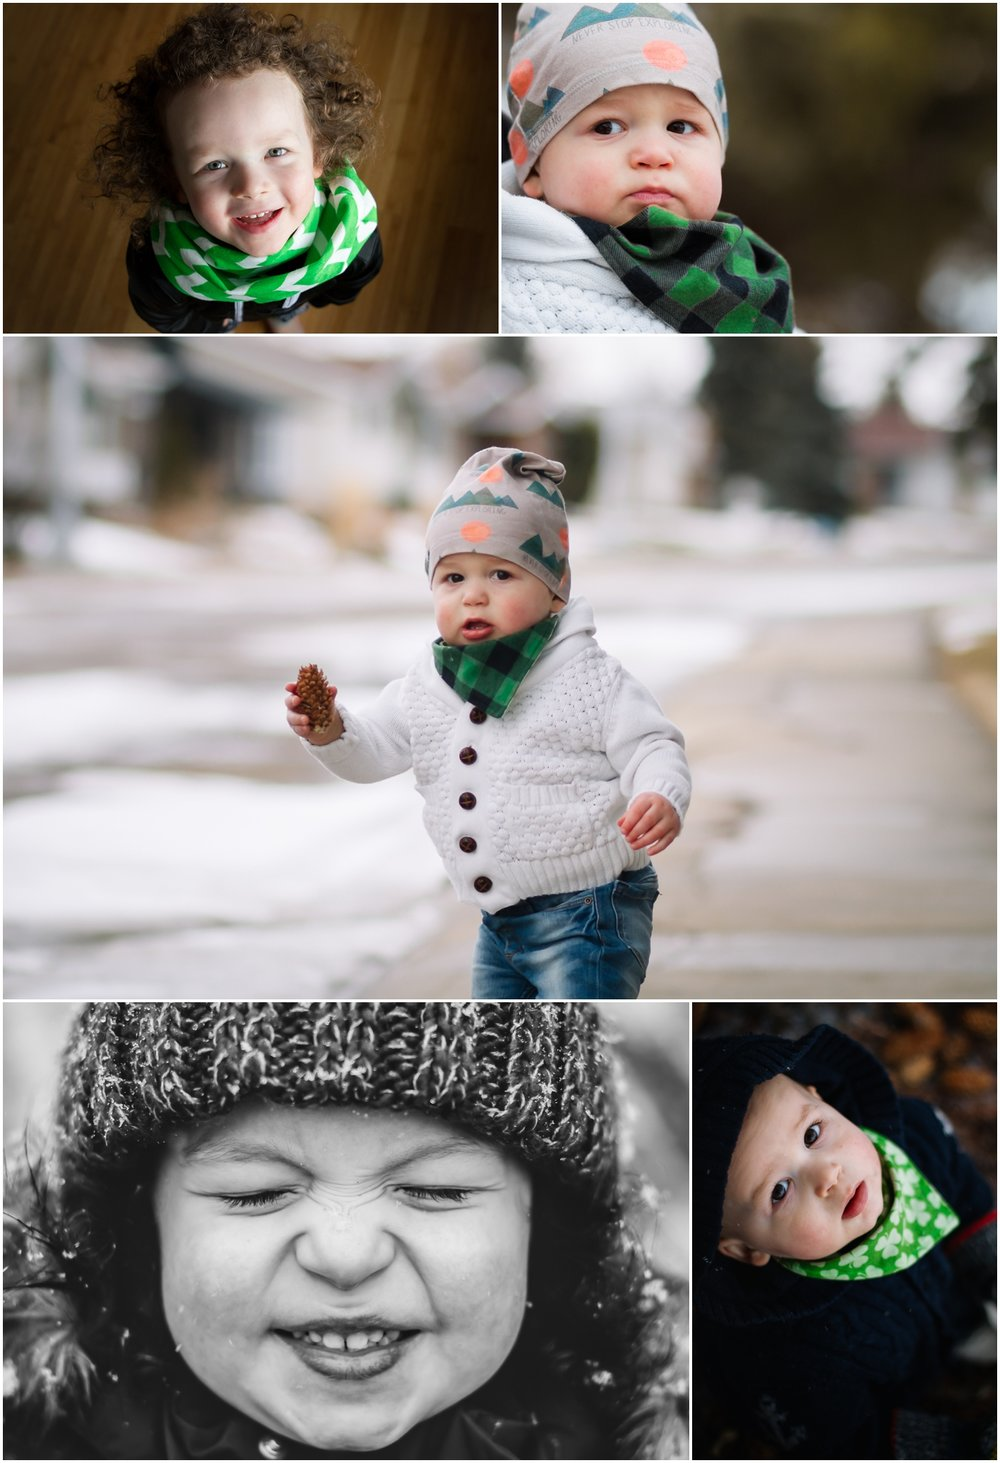 Edmonton Child and Family Photographer - Best of 2016 - Lifestyle Winter